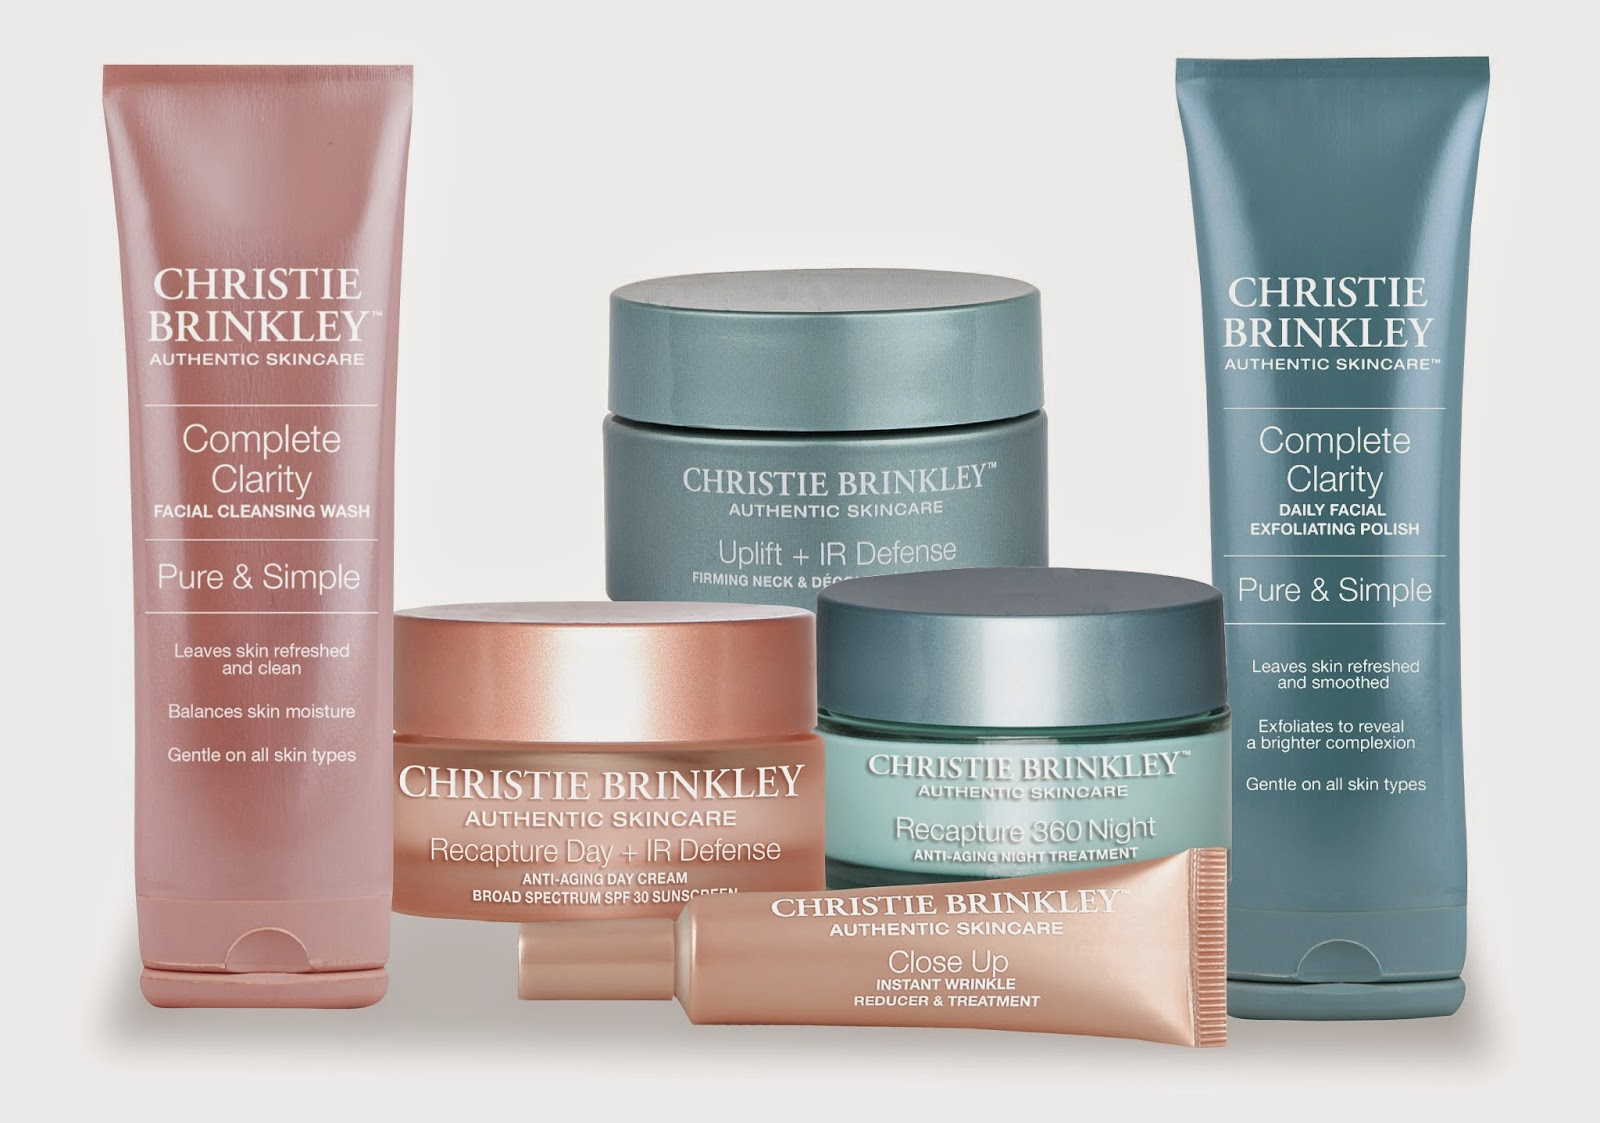 Heck Of A Bunch: Christie Brinkley Authentic Skincare on HSN